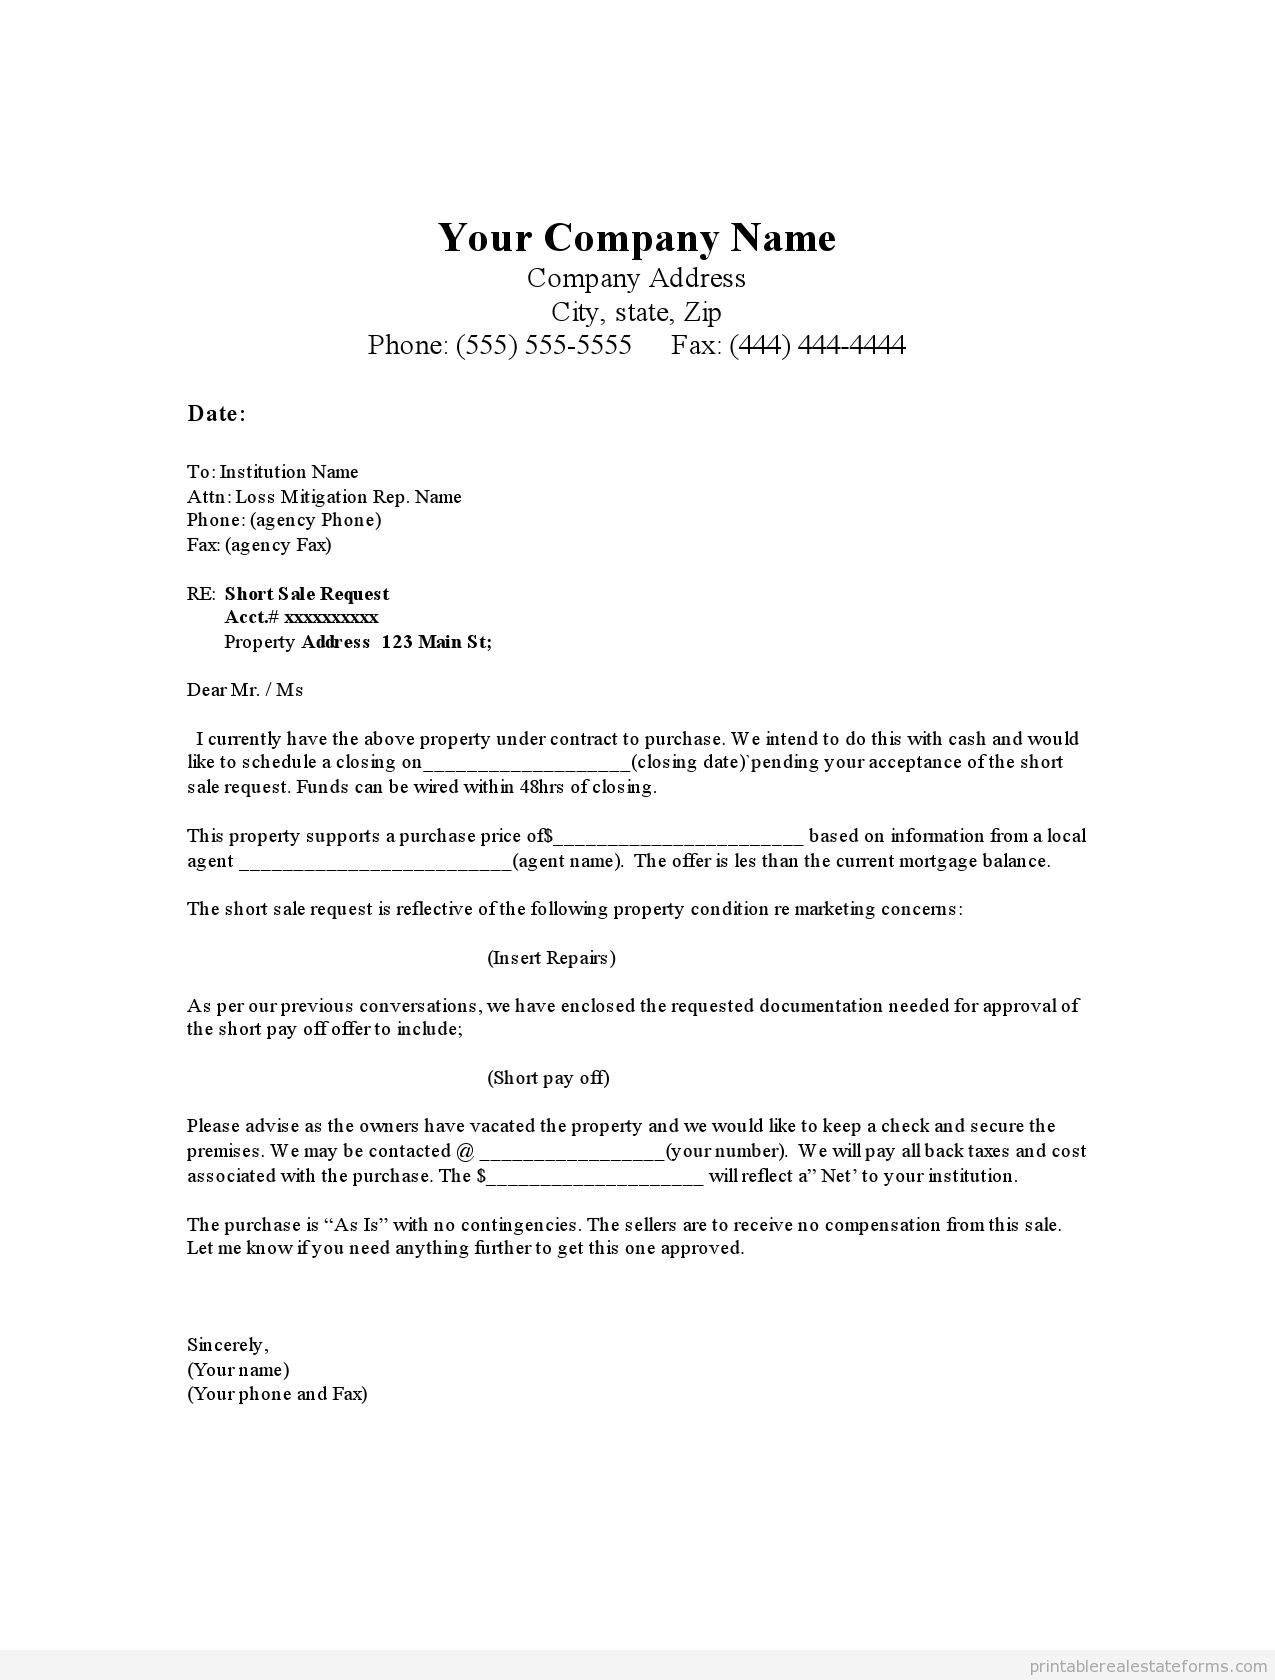 House fer Letter Template Examples